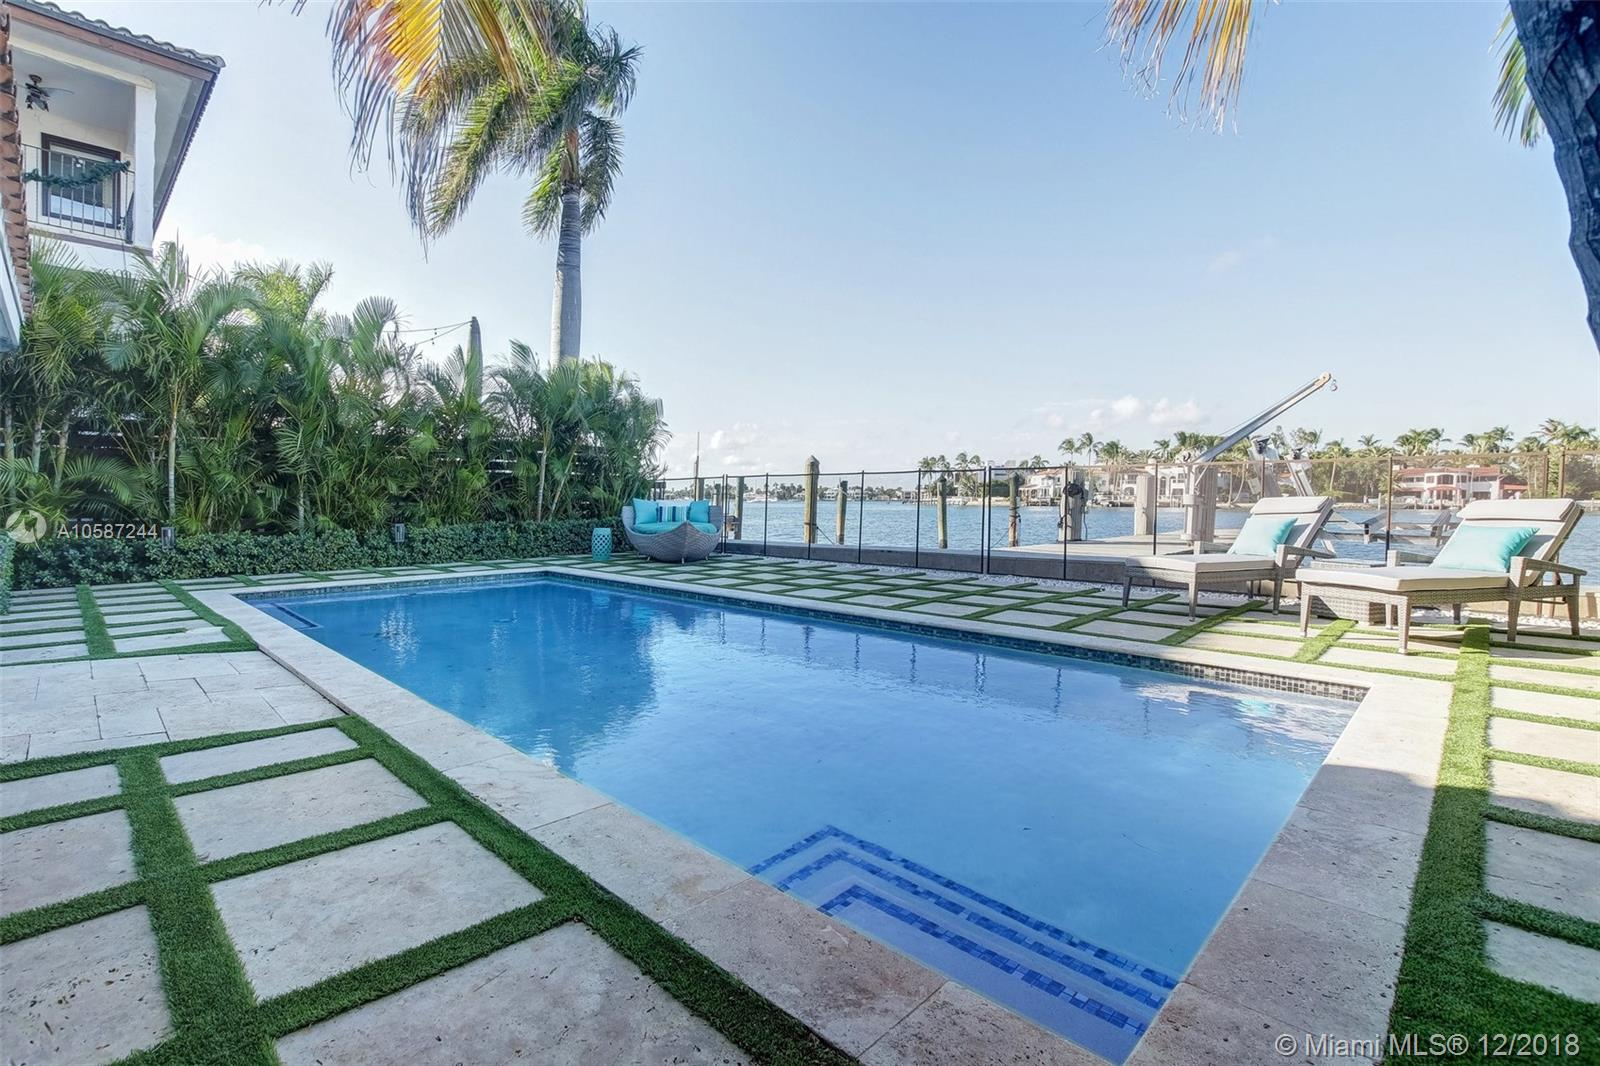 253 Coconut ln- miami-beach-fl-33139-a10587244-Pic65